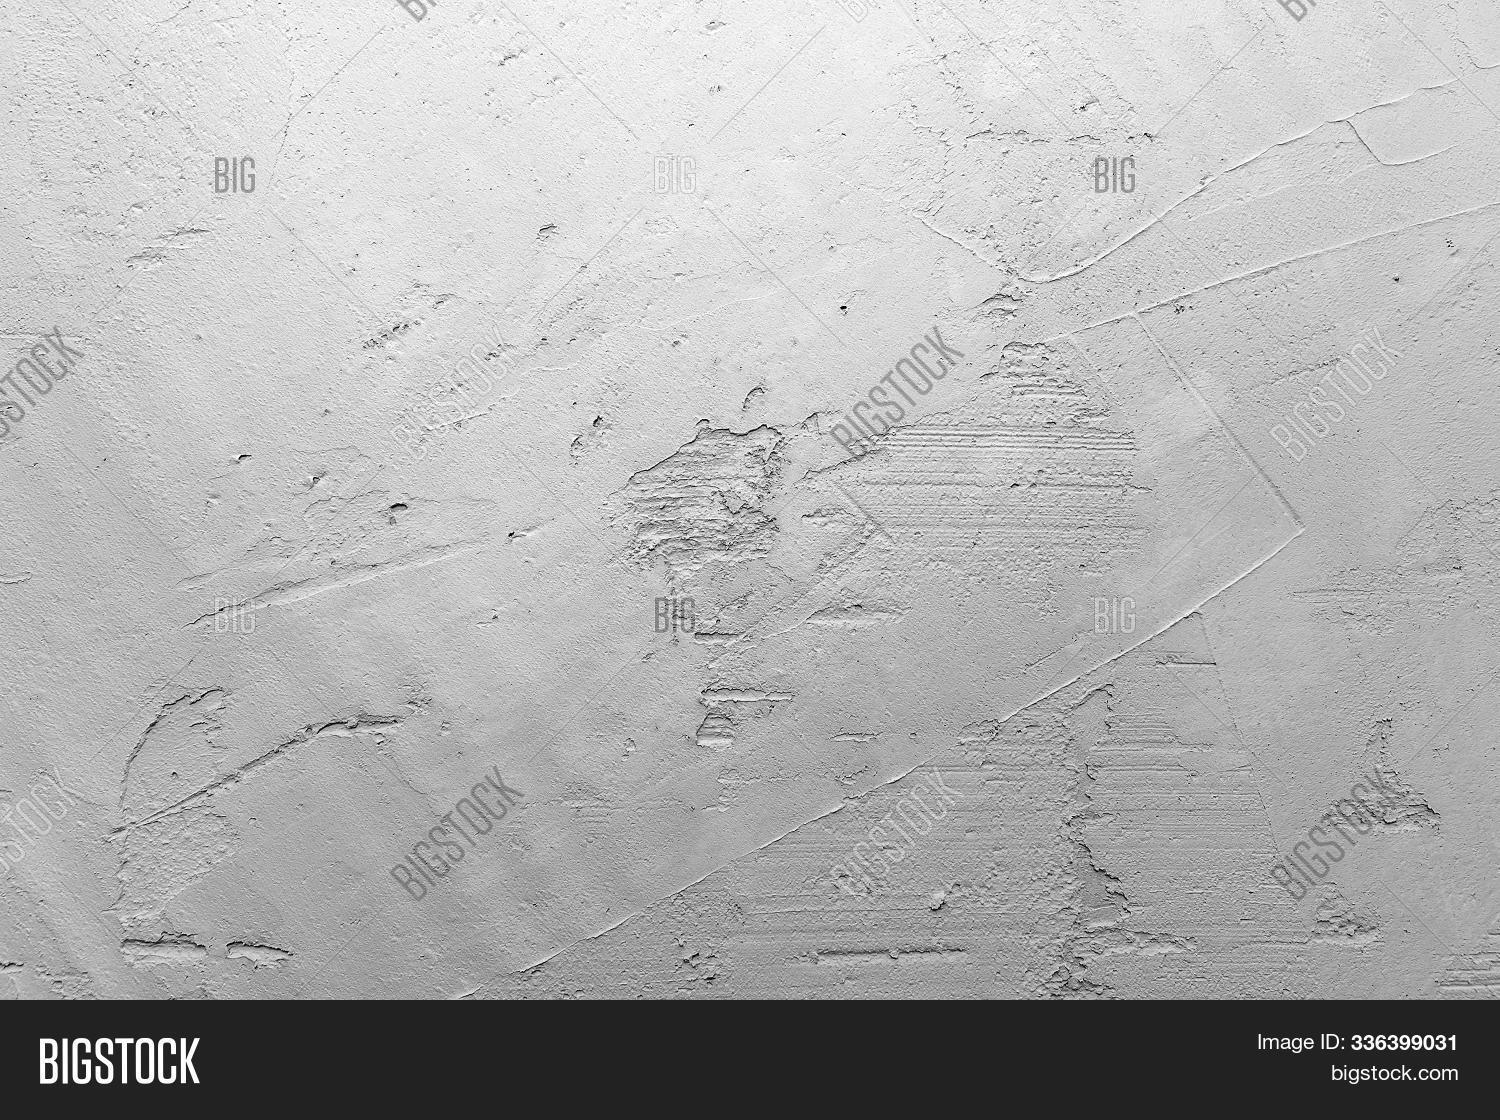 abstract,antique,architecture,backdrop,background,blank,bright,broken,cement,clean,closeup,color,concrete,construction,copy,course,damaged,design,detail,dirty,empty,faded,gray,grunge,grungy,inside,material,monochrome,obsolete,old,outdoor,paint,pattern,plaster,retro,rough,rustic,space,stained,stone,structure,stucco,style,surface,texture,uneven,vintage,wall,weathered,white